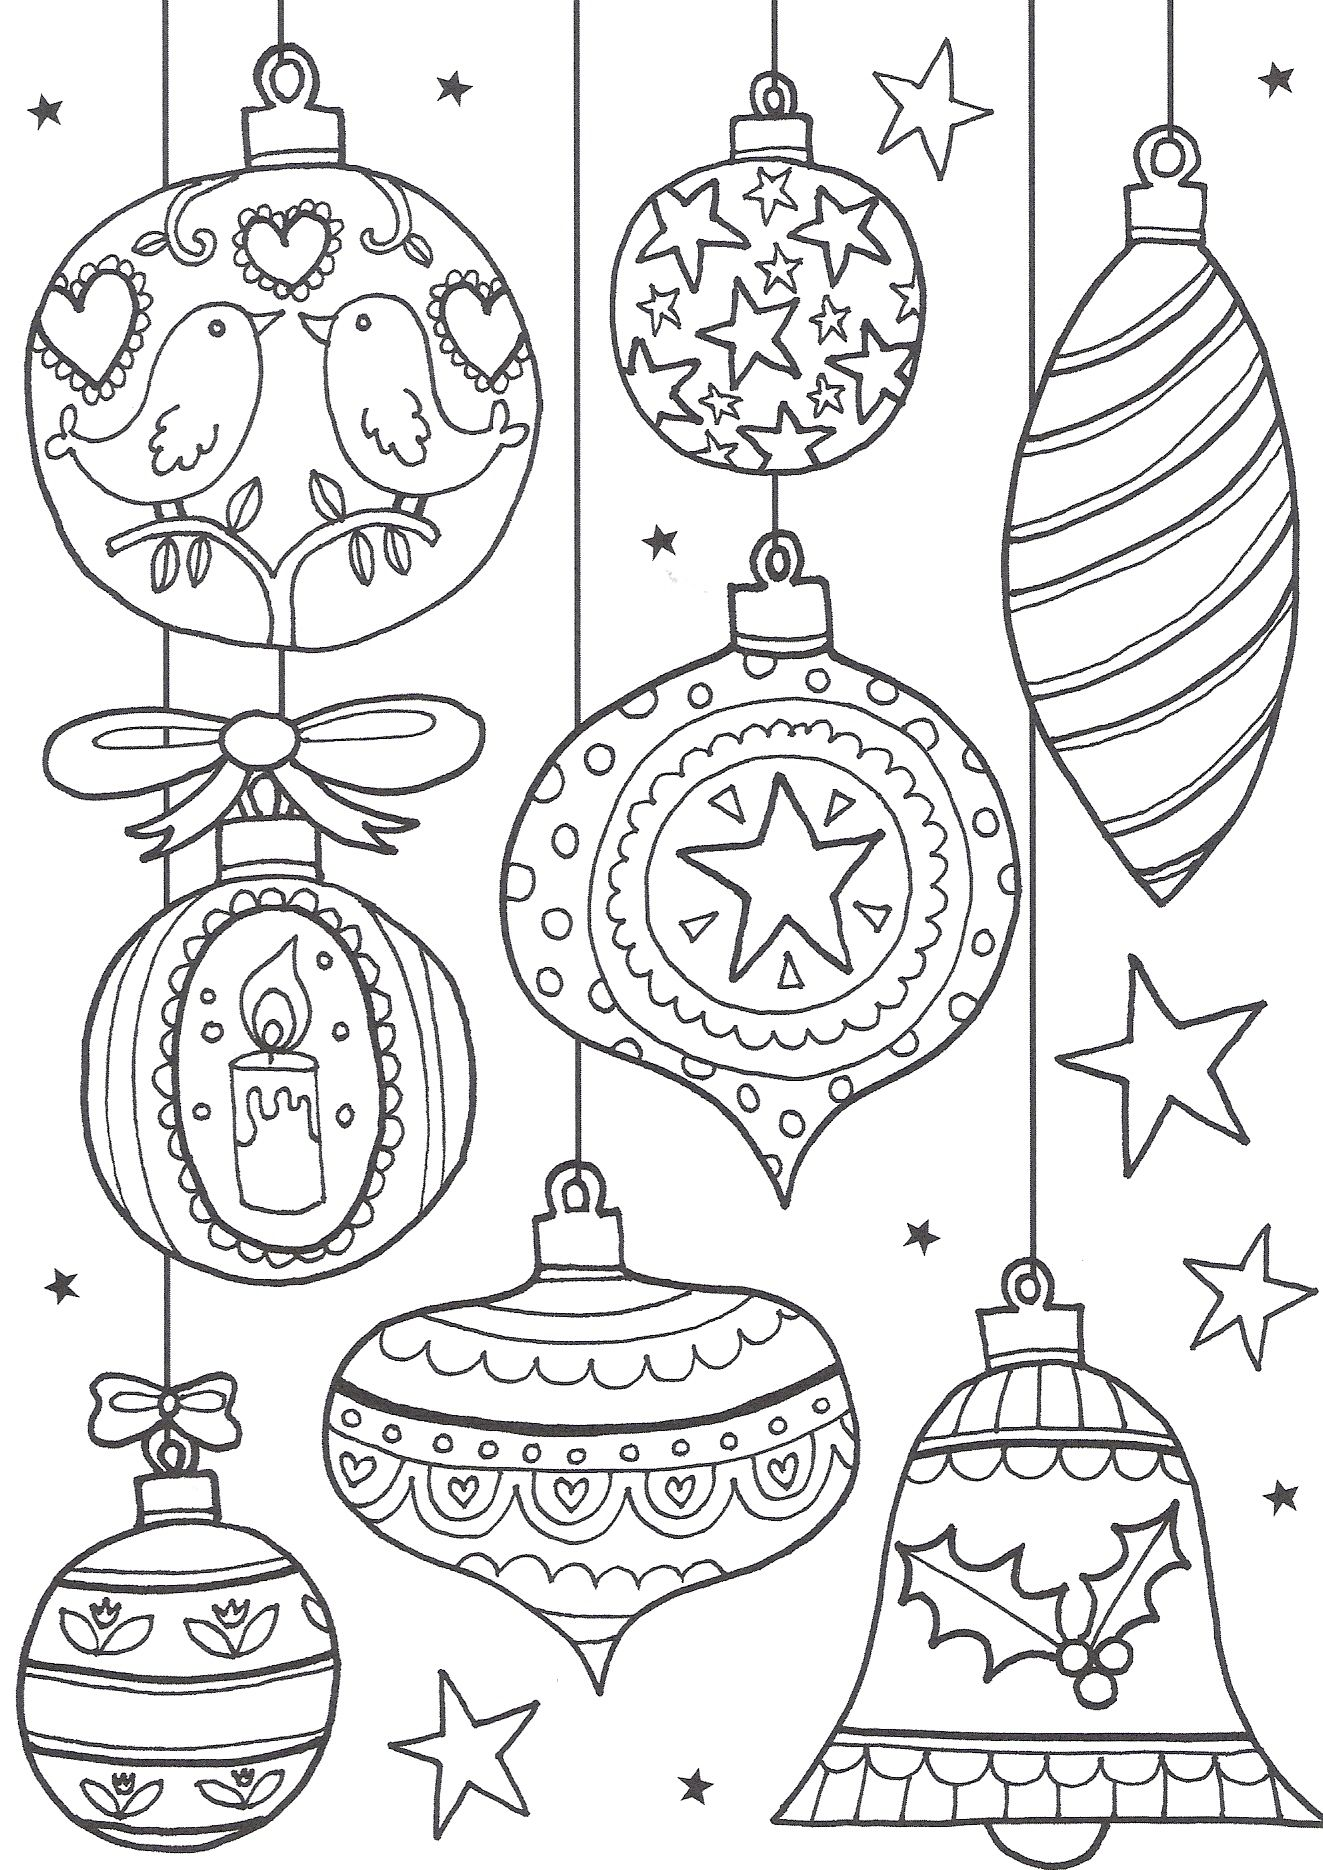 Christmas Colouring For Adults Coloring Pages